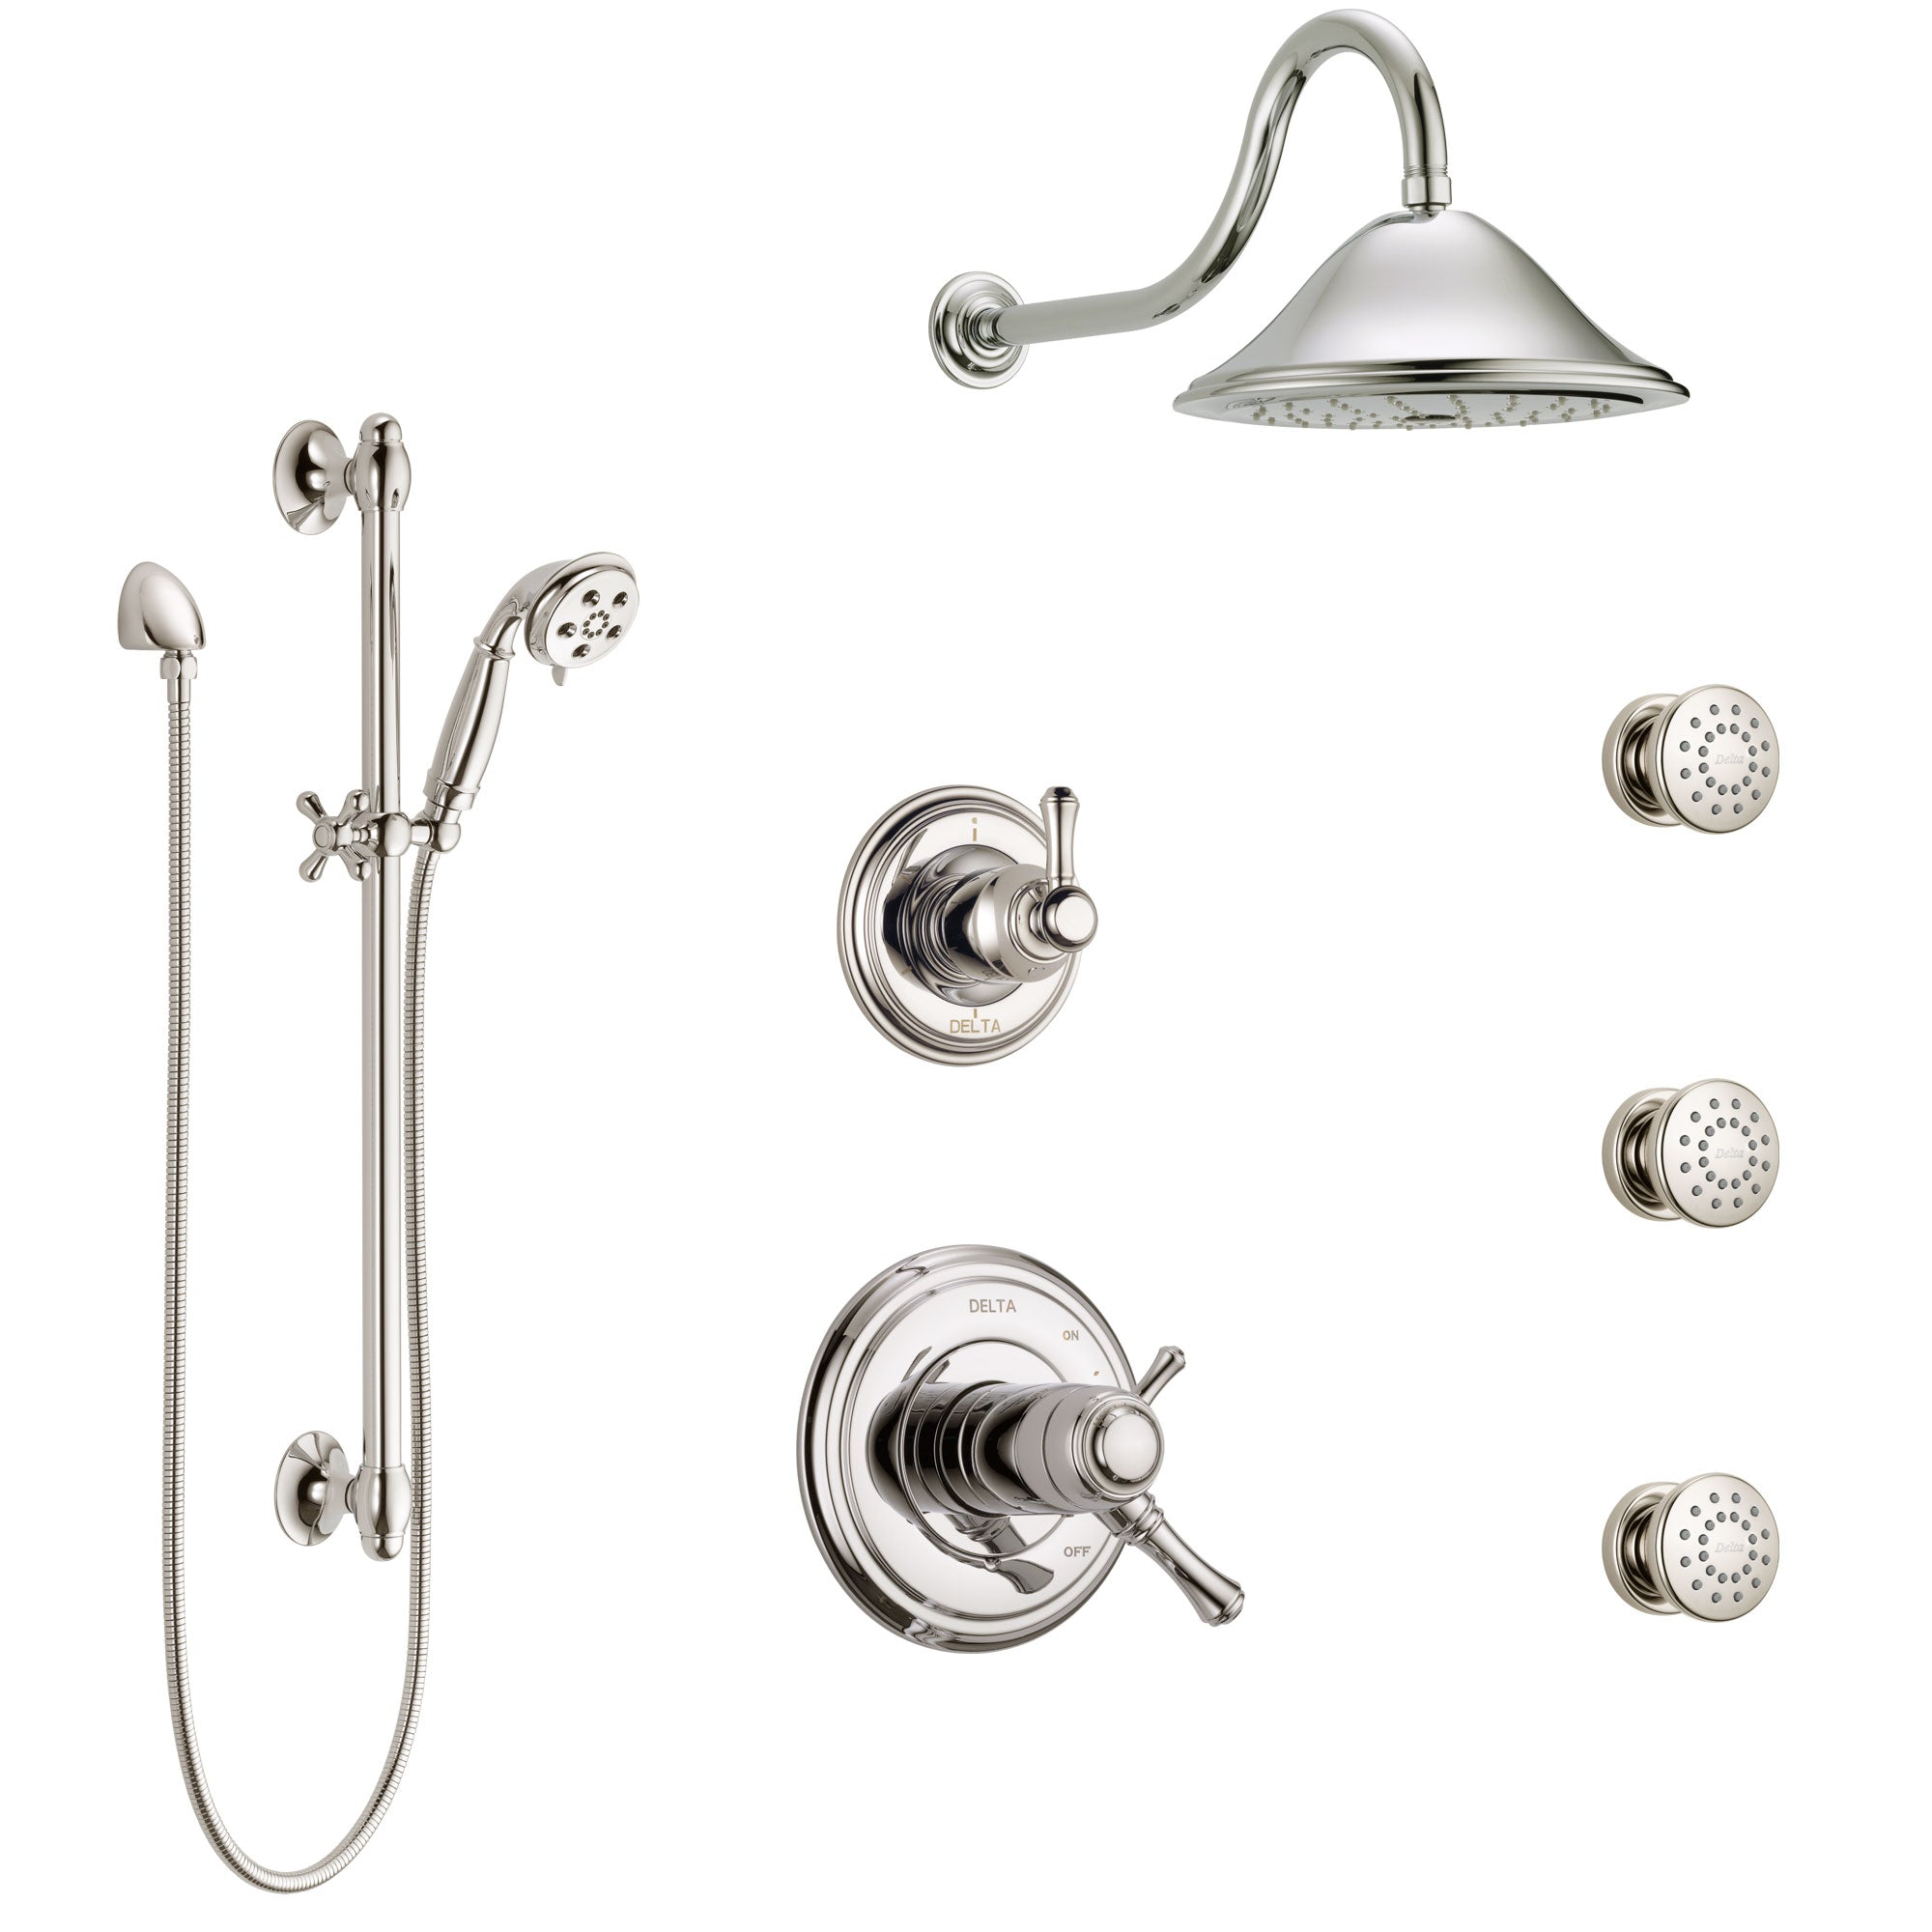 Delta Cassidy Polished Nickel Shower System with Dual Thermostatic Control, 6-Setting Diverter, Showerhead, 3 Body Sprays, and Hand Shower SS17T971PN2